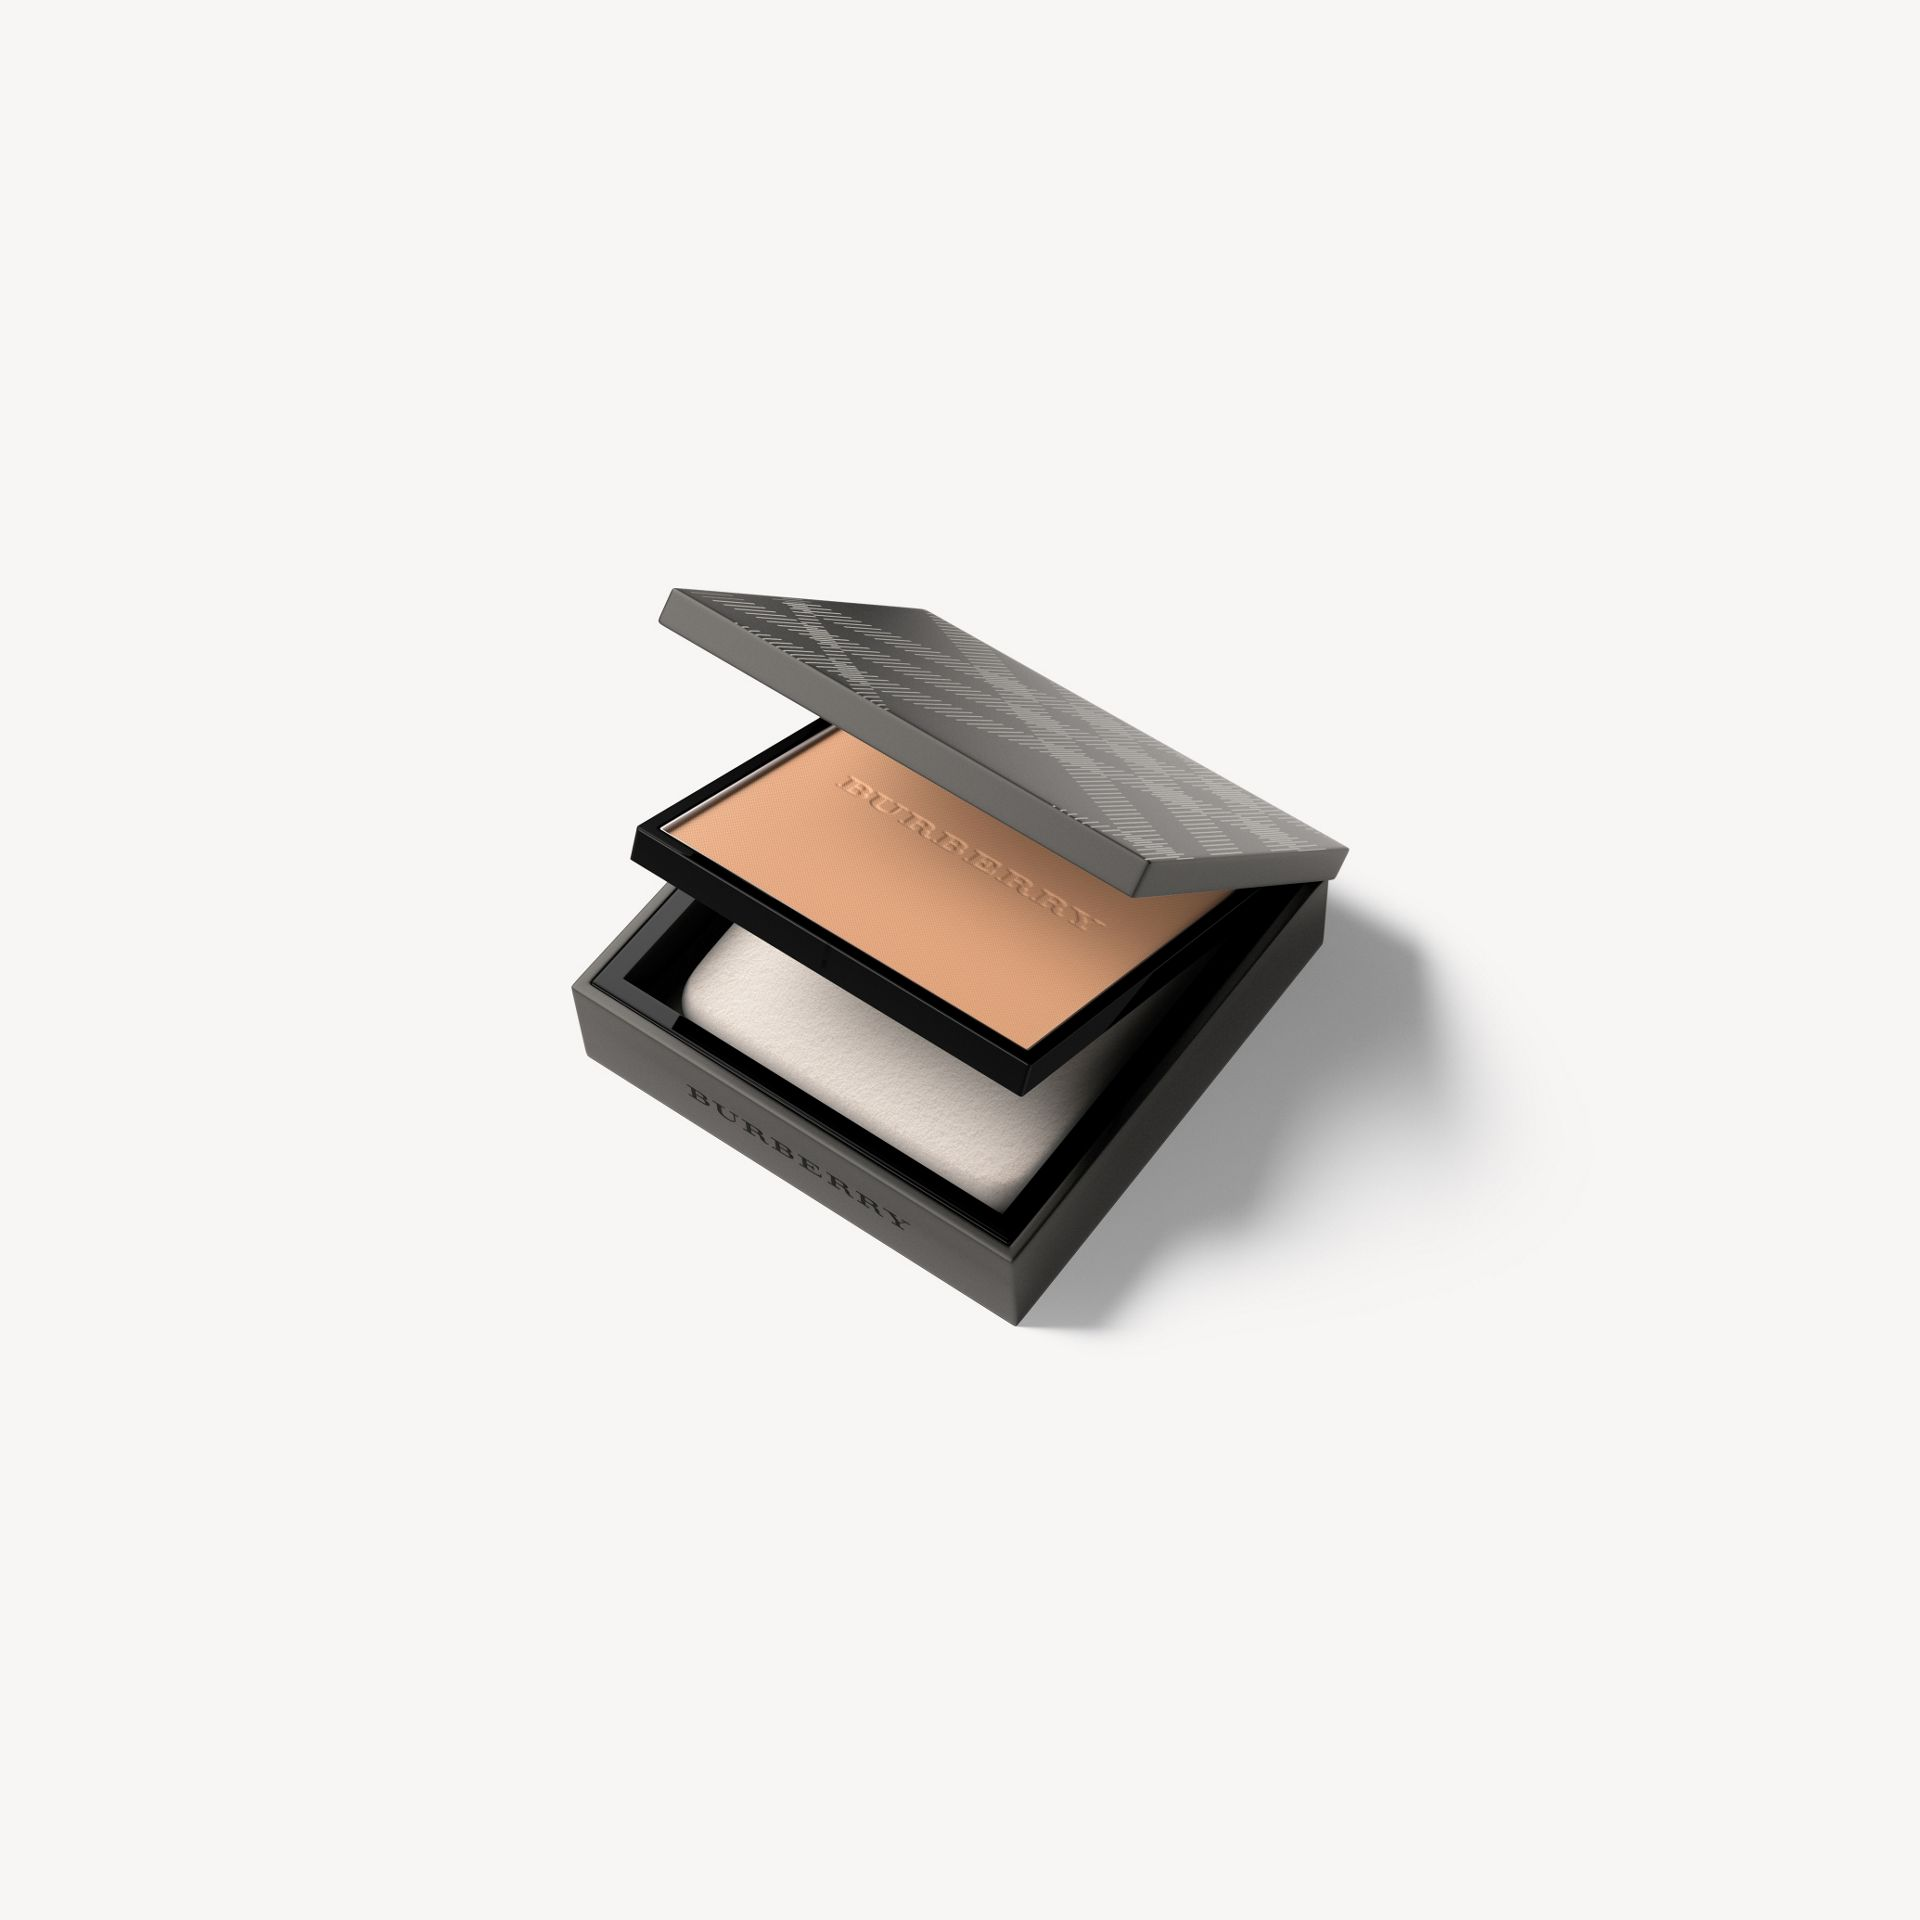 Honey 32 Burberry Cashmere Compact – Honey No.32 - Galerie-Bild 1